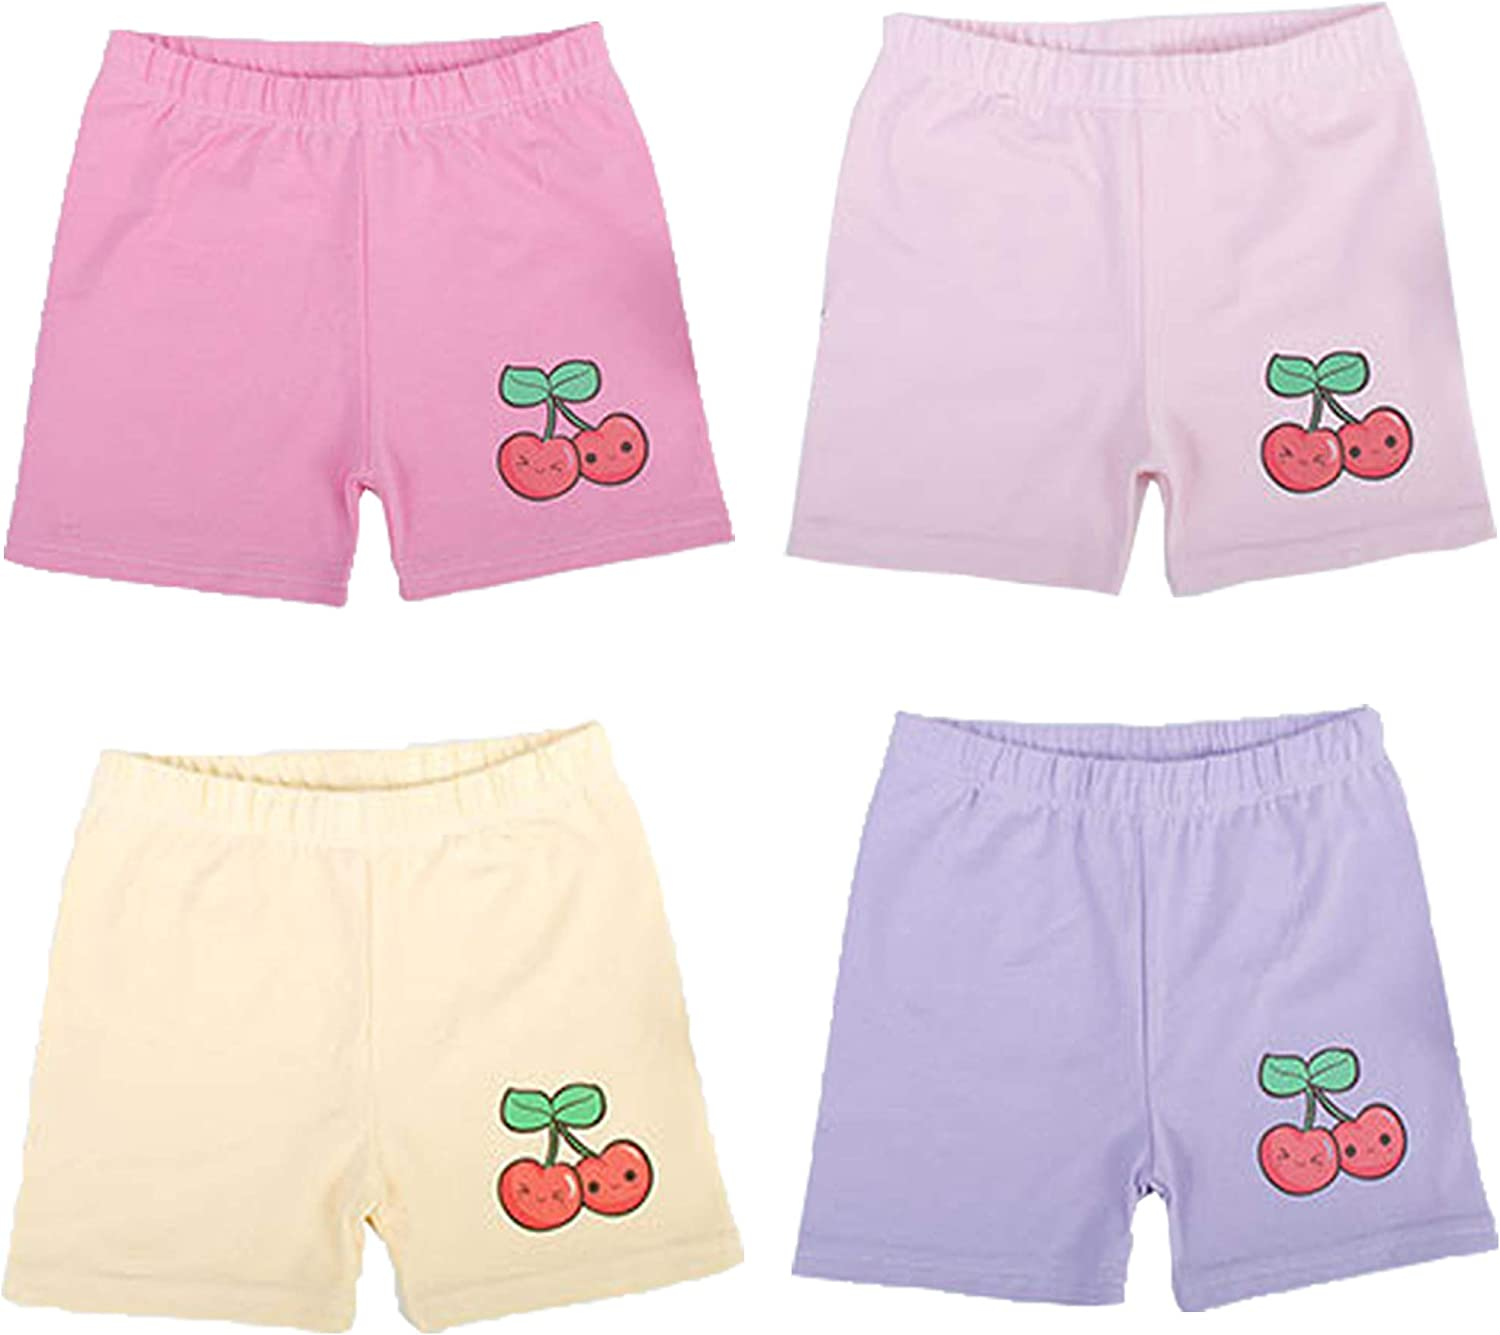 SummerWin Girls Dance Bike Shorts with Breathable Material for Sport Play Or Under Skirts